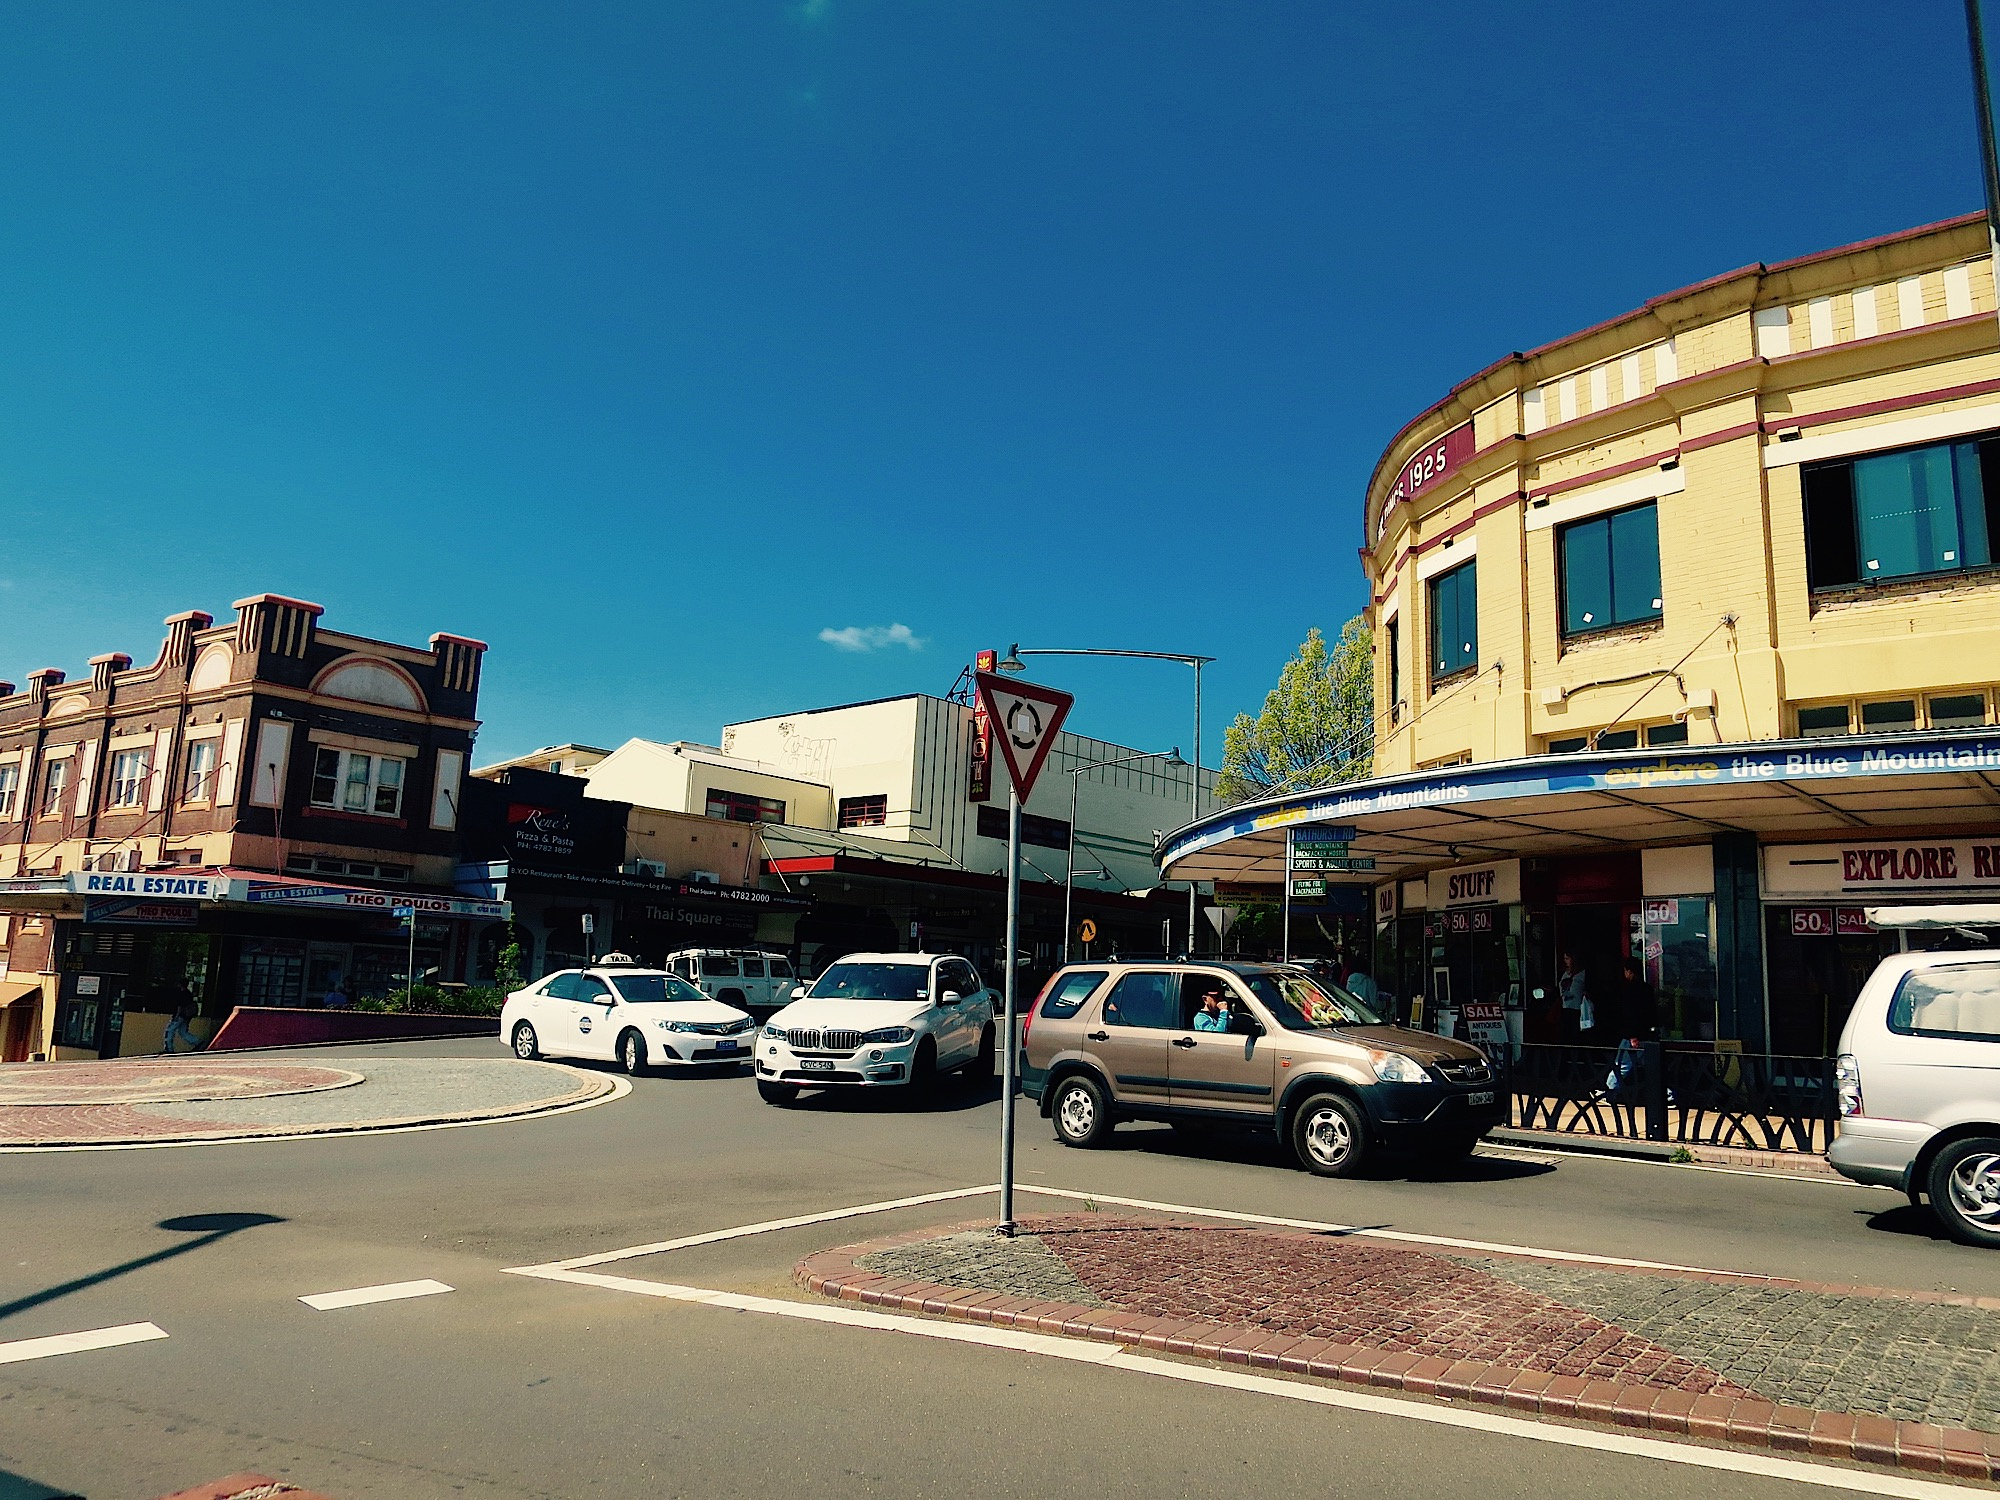 Town of Katoomba